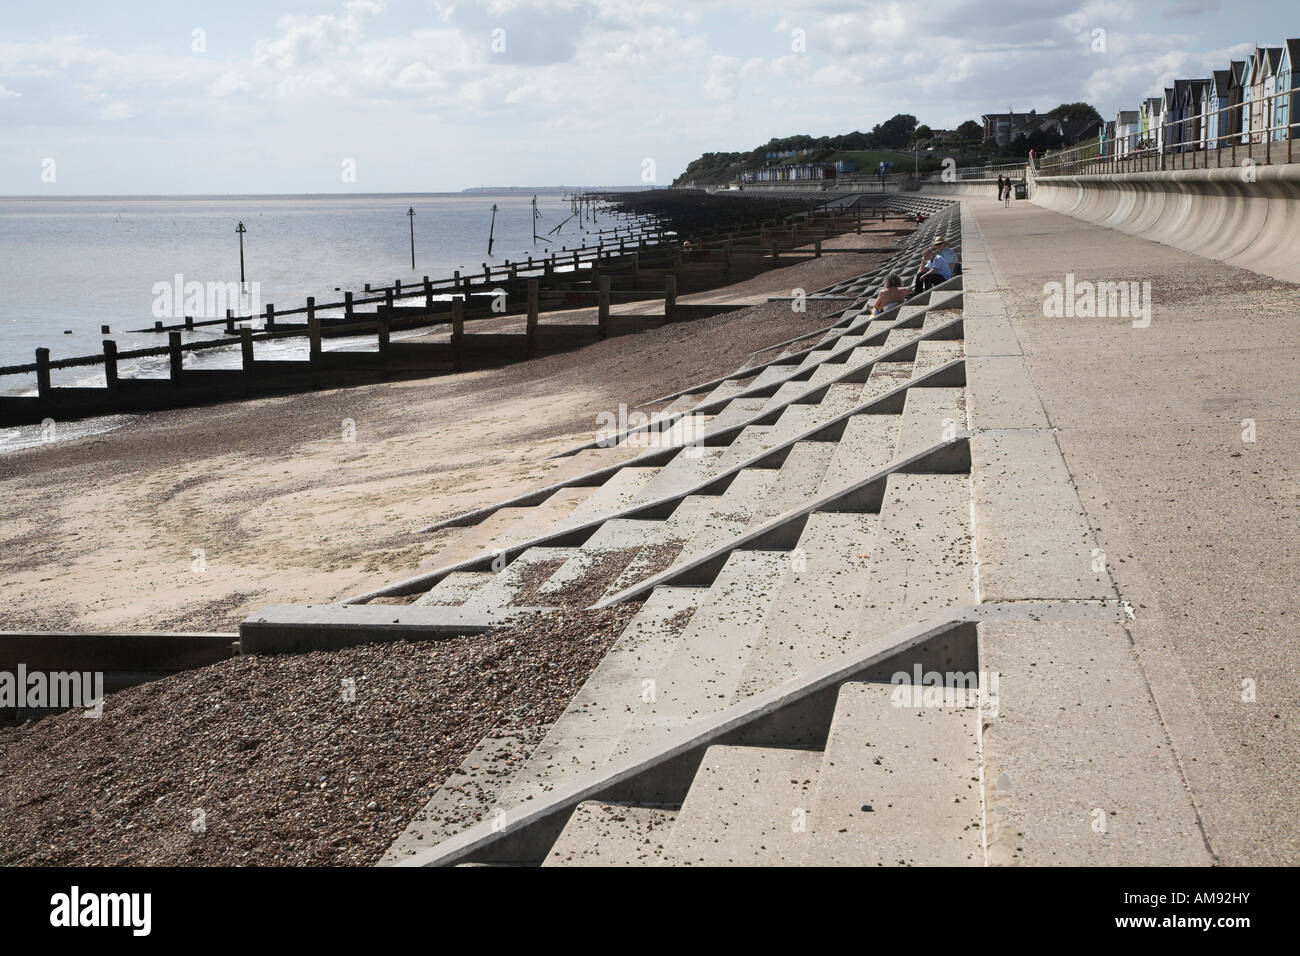 coastal defences Societal concern (both real and imagined) over coastal erosion and flooding, often results in construction of sea defences to protect property.